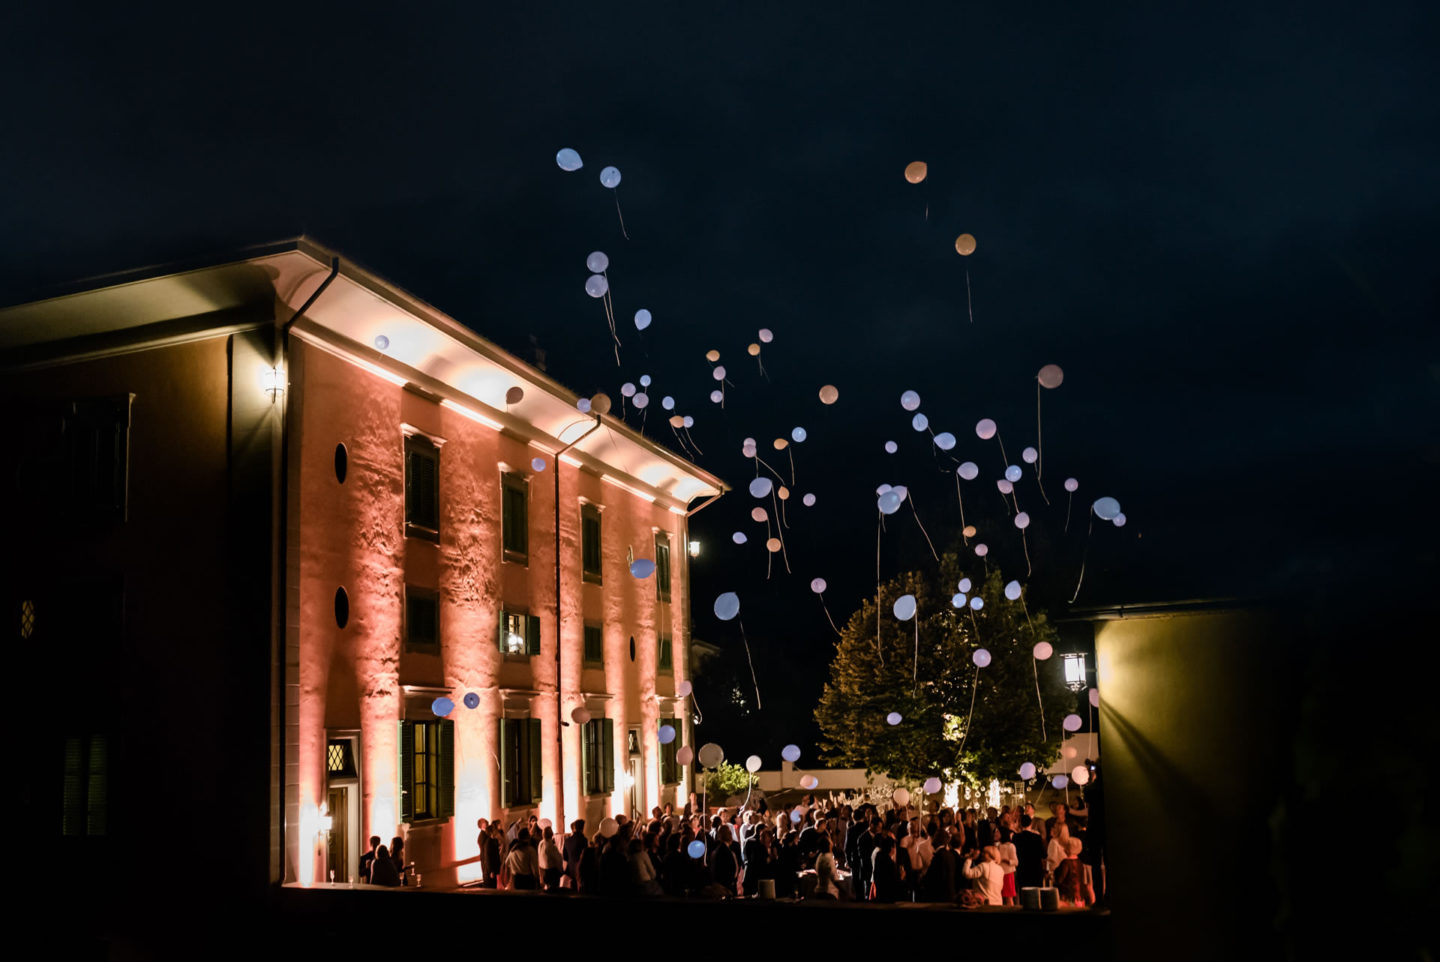 Balloons :: Amazing wedding day at Il Borro :: Luxury wedding photography - 49 :: Balloons